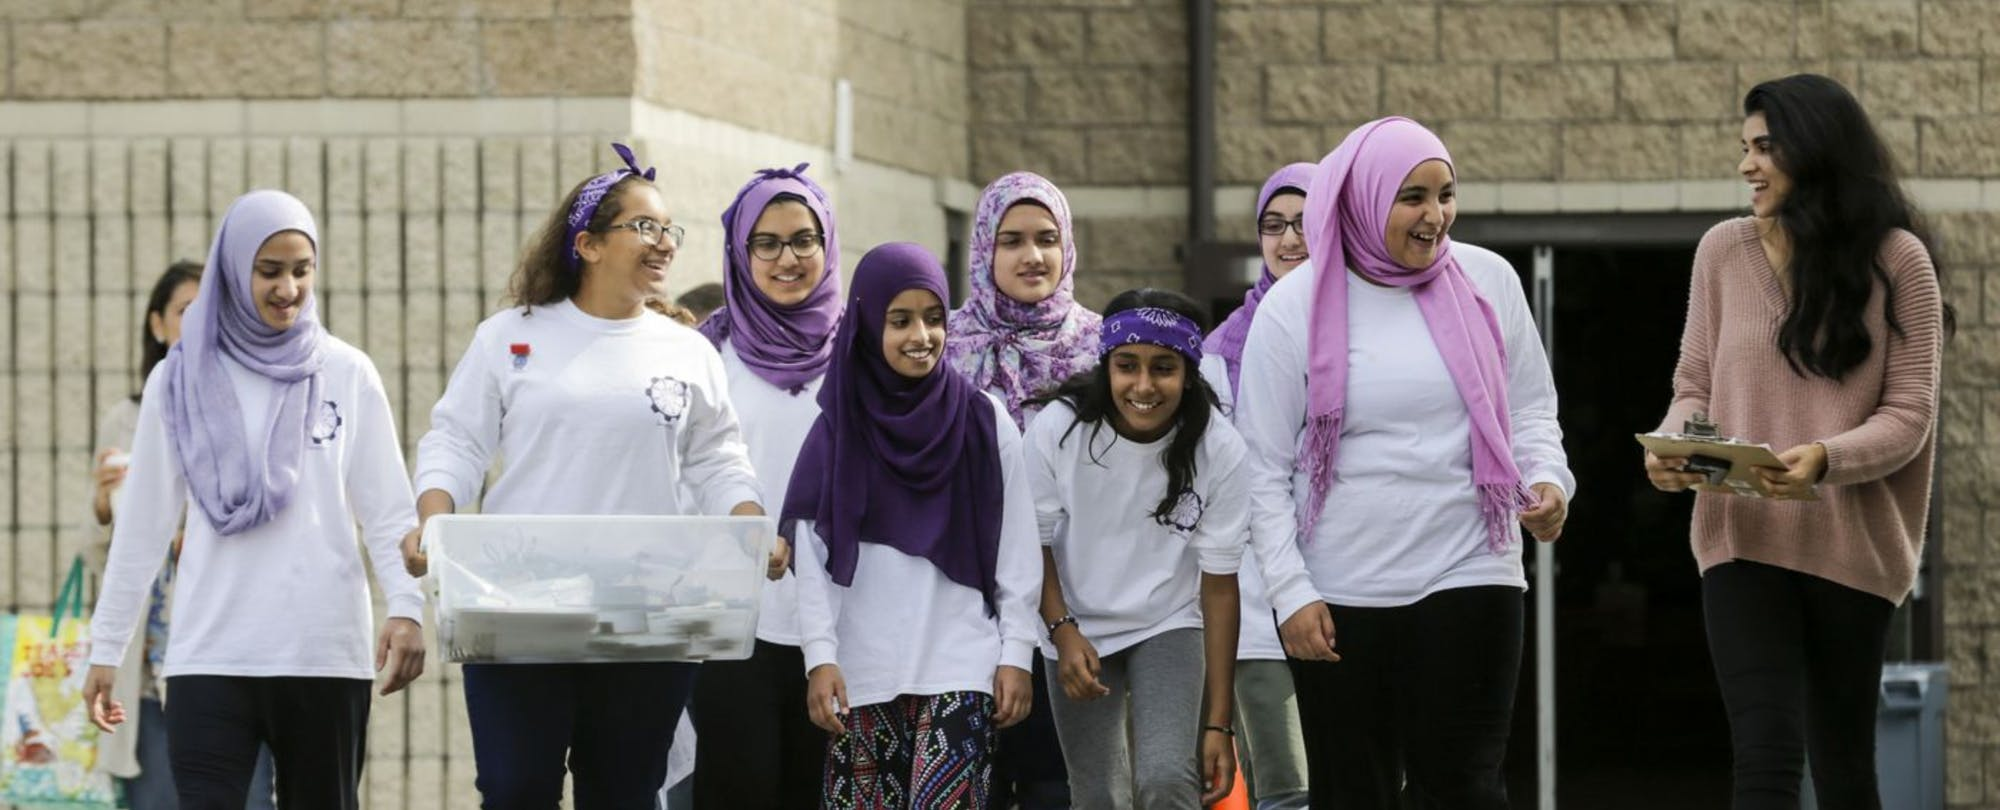 How a Stereotype-Smashing Teen Founded the First All-Girl Muslim Robotics Team